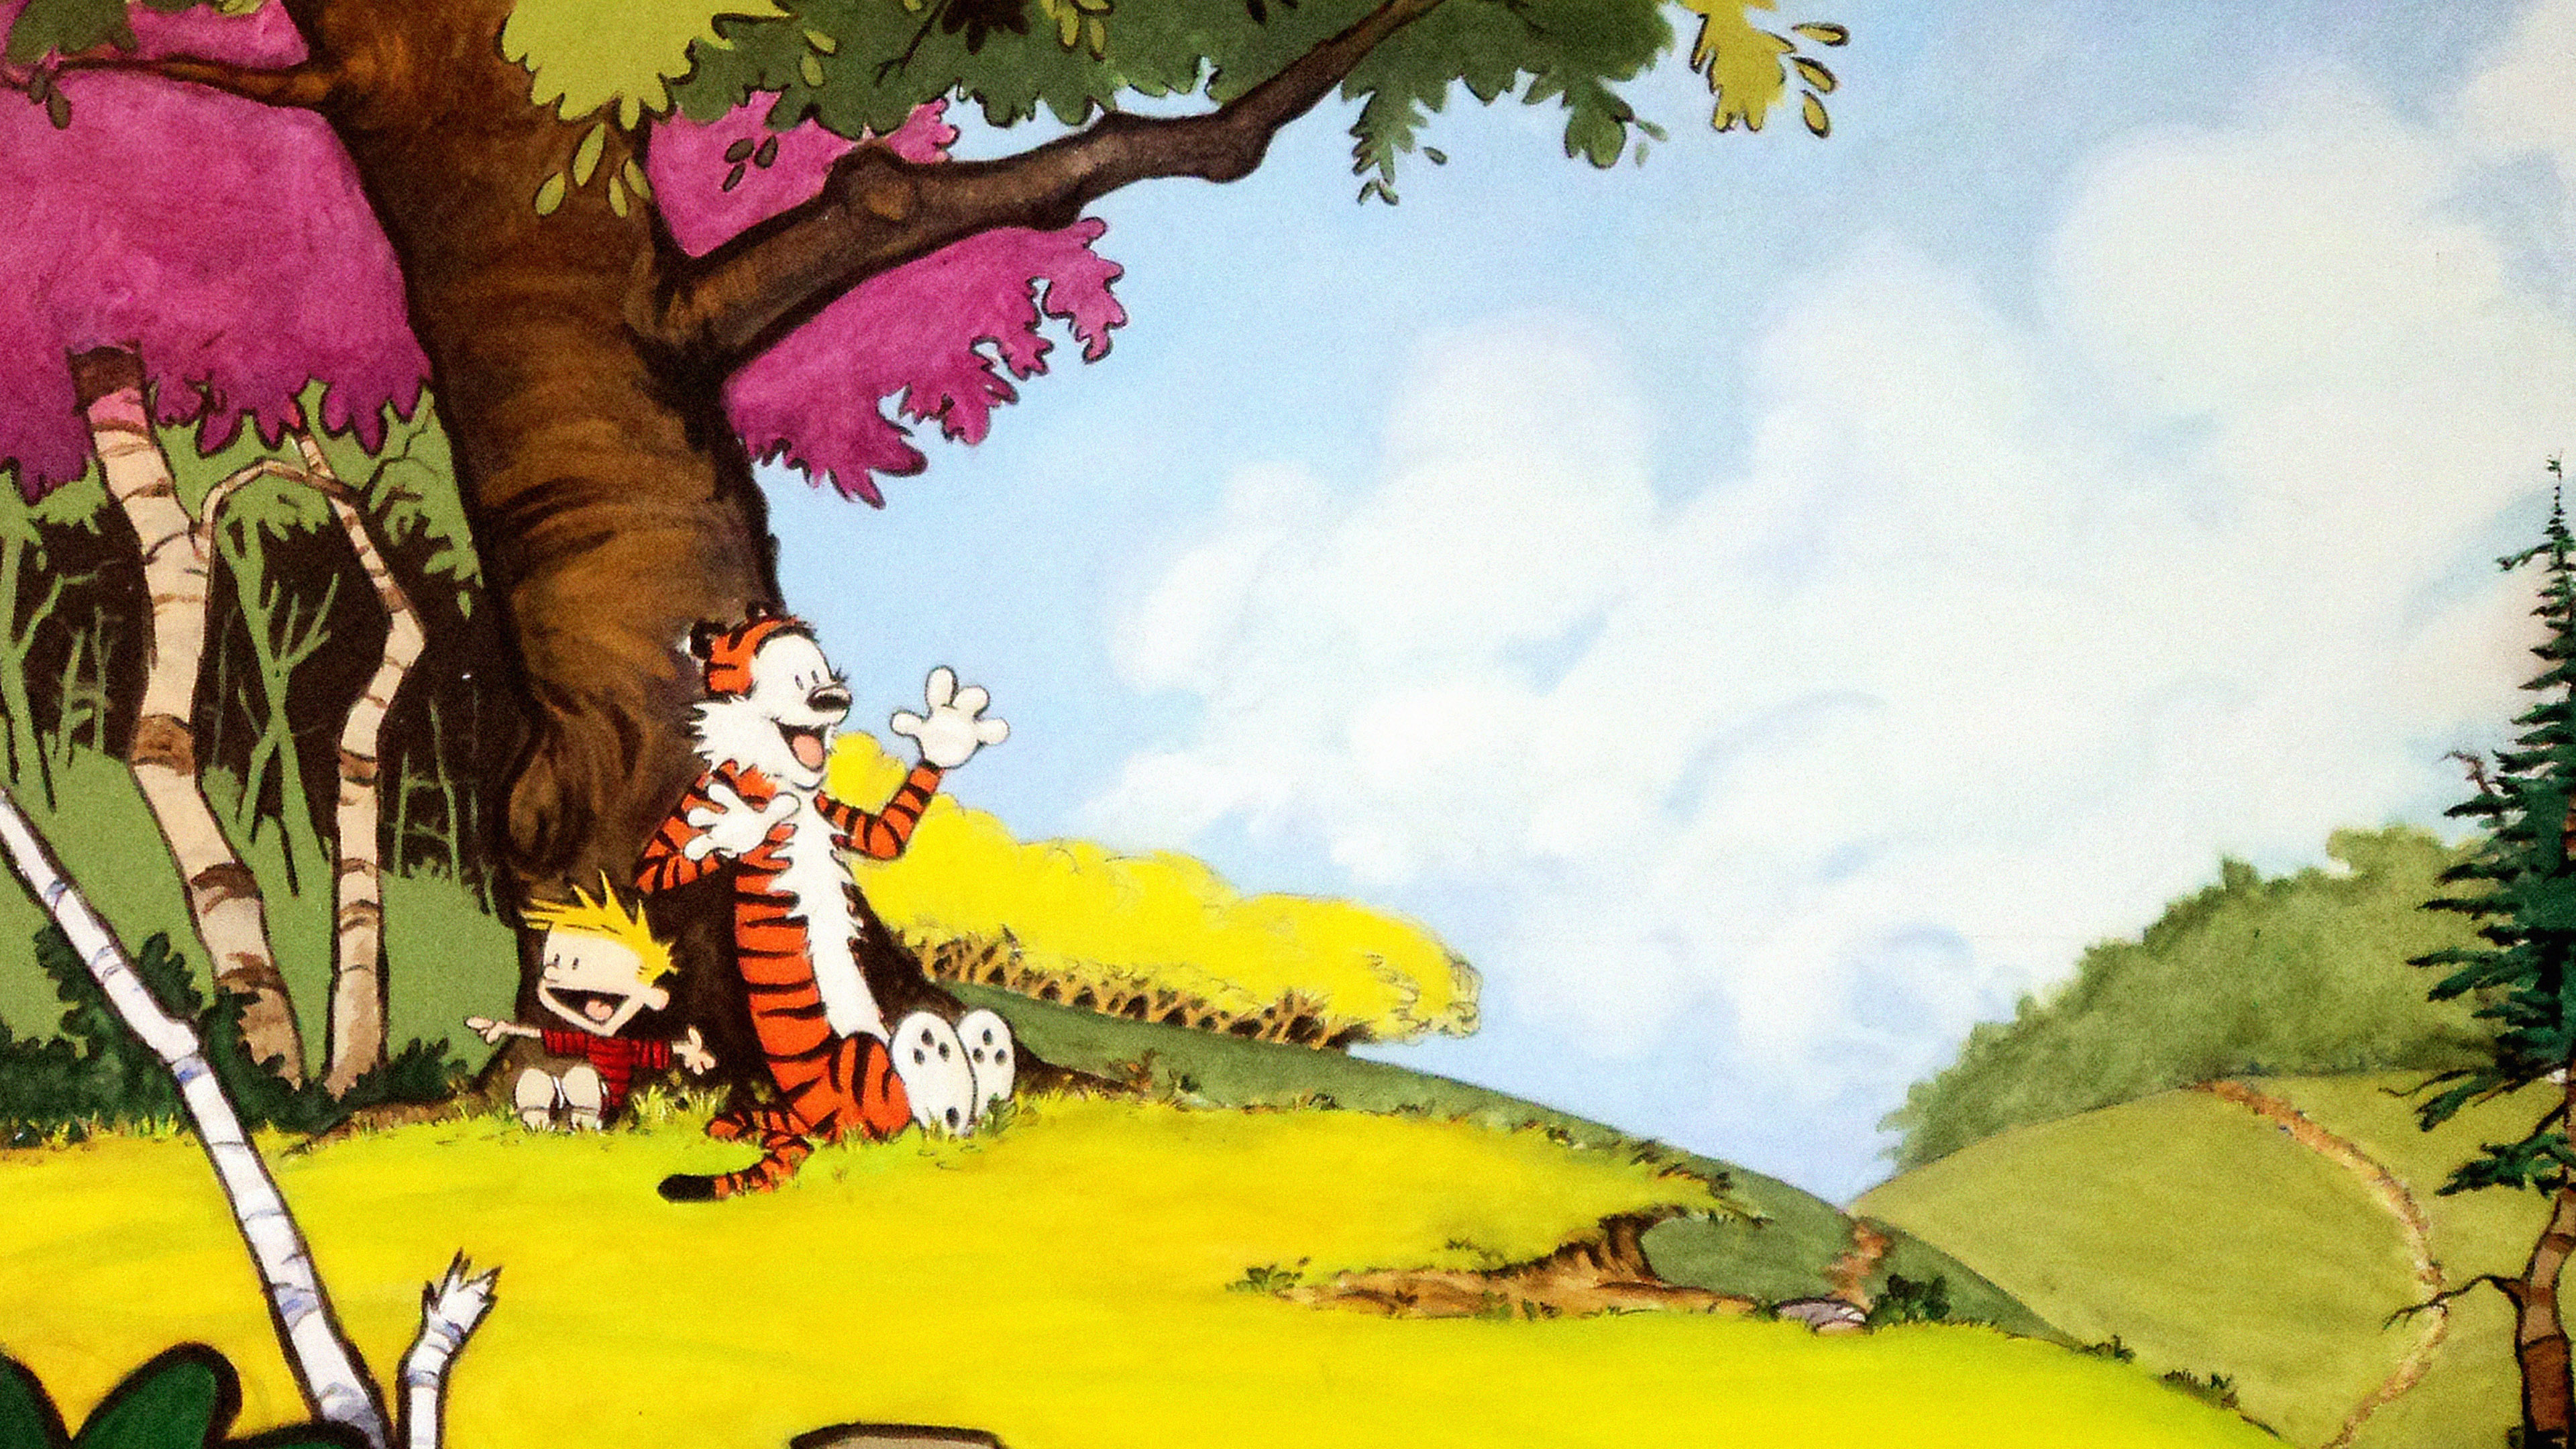 Green Animal Wallpaper Ac48 Wallpaper Calvin And Hobbes After Nap Papers Co